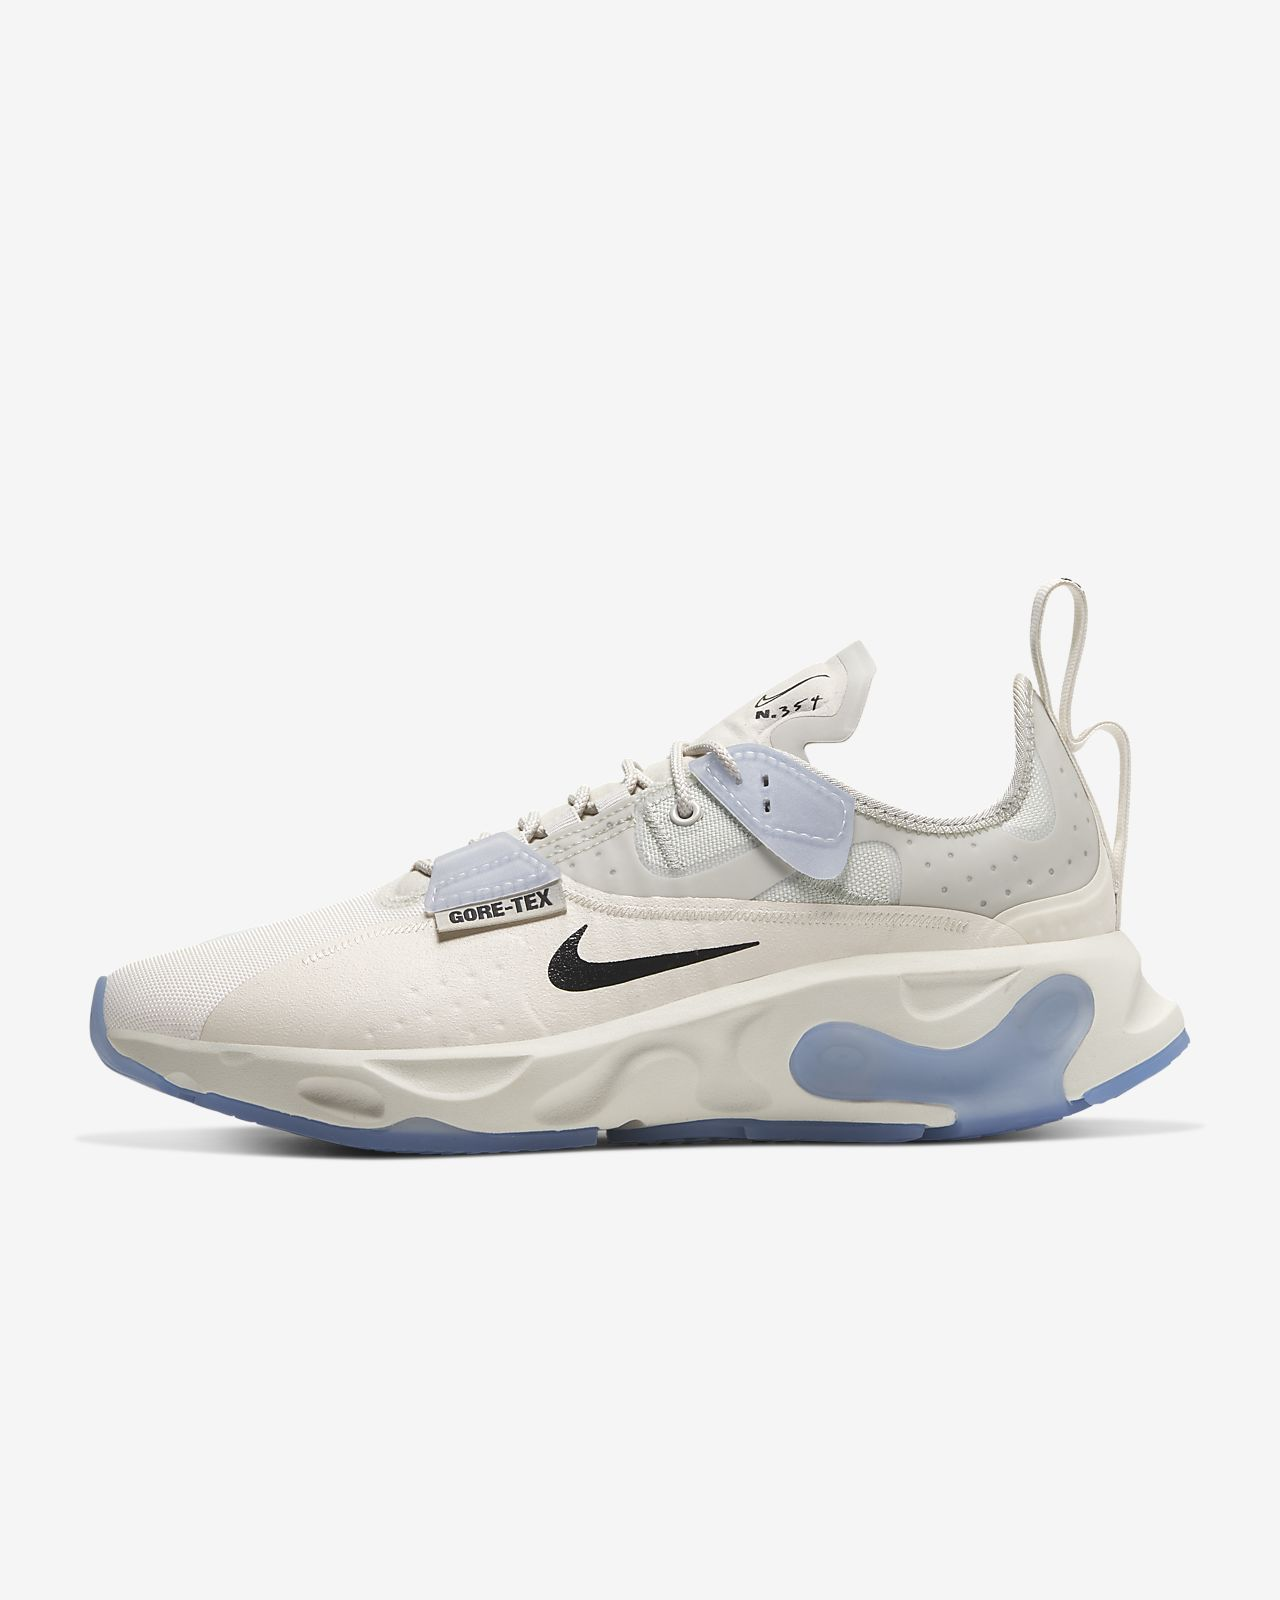 Chaussure Nike React-Type GTX pour Homme